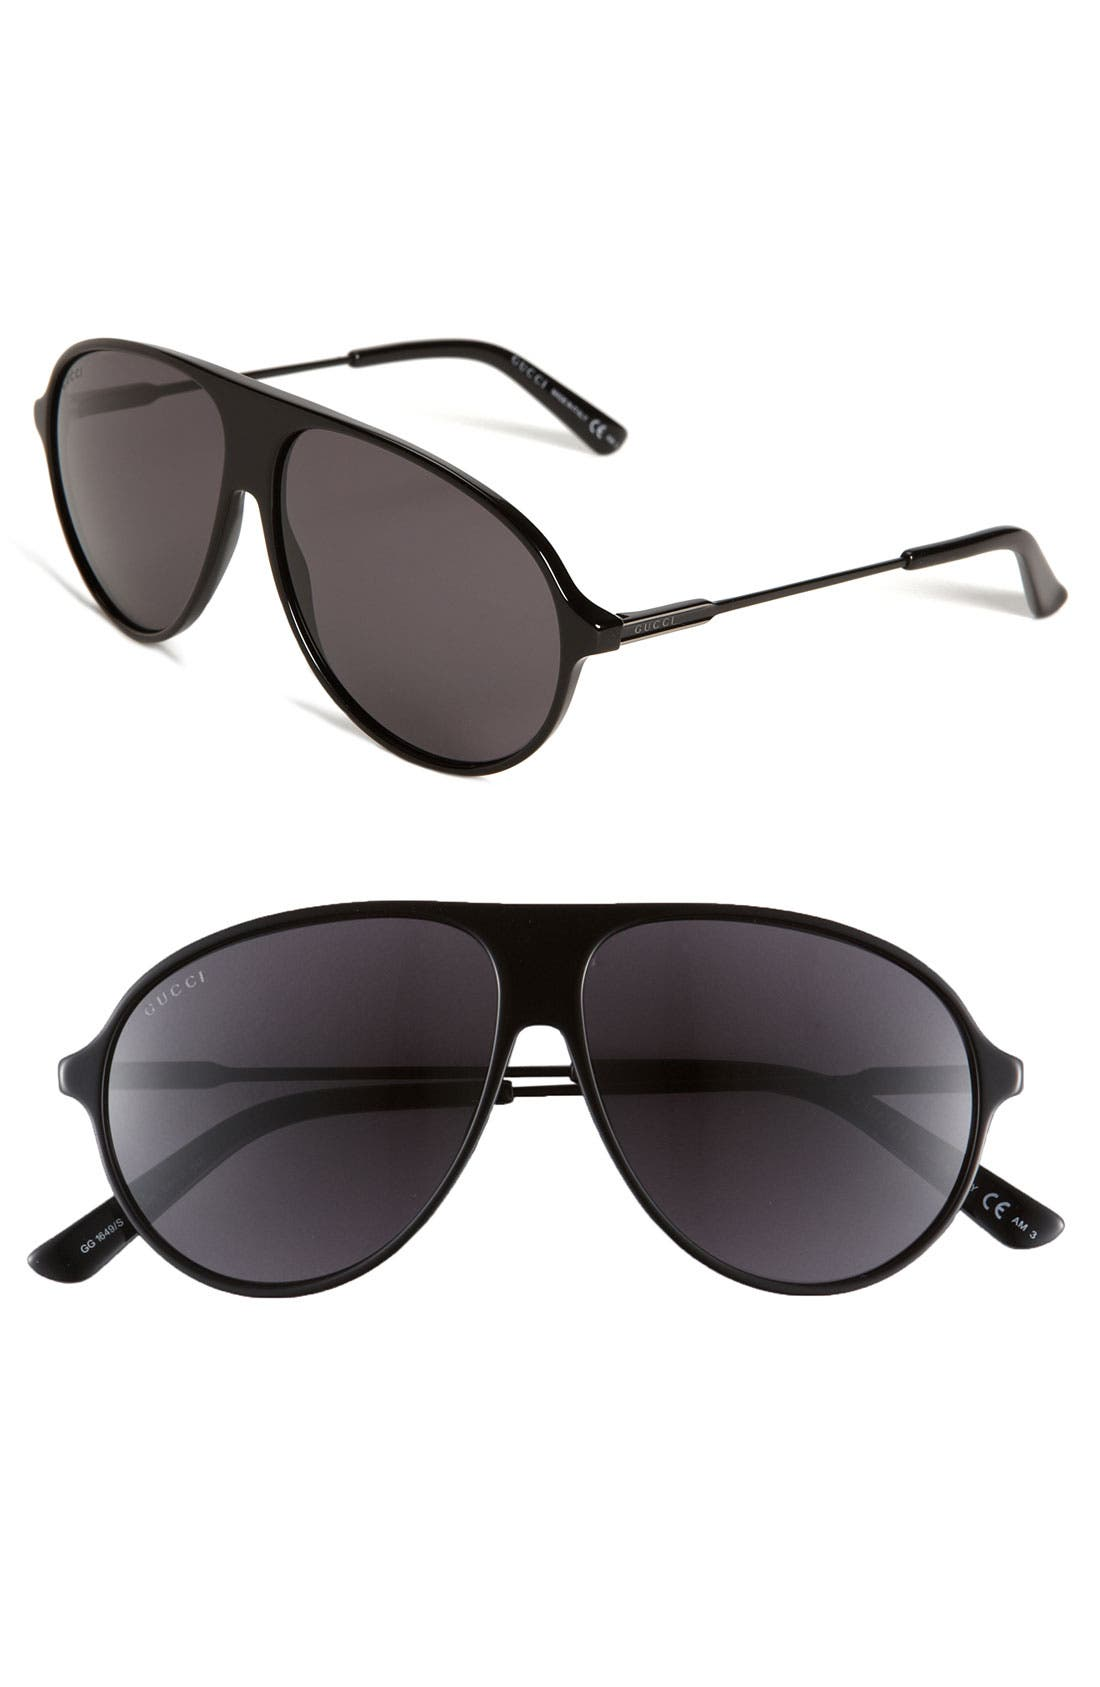 Main Image - Gucci 58mm Aviator Sunglasses